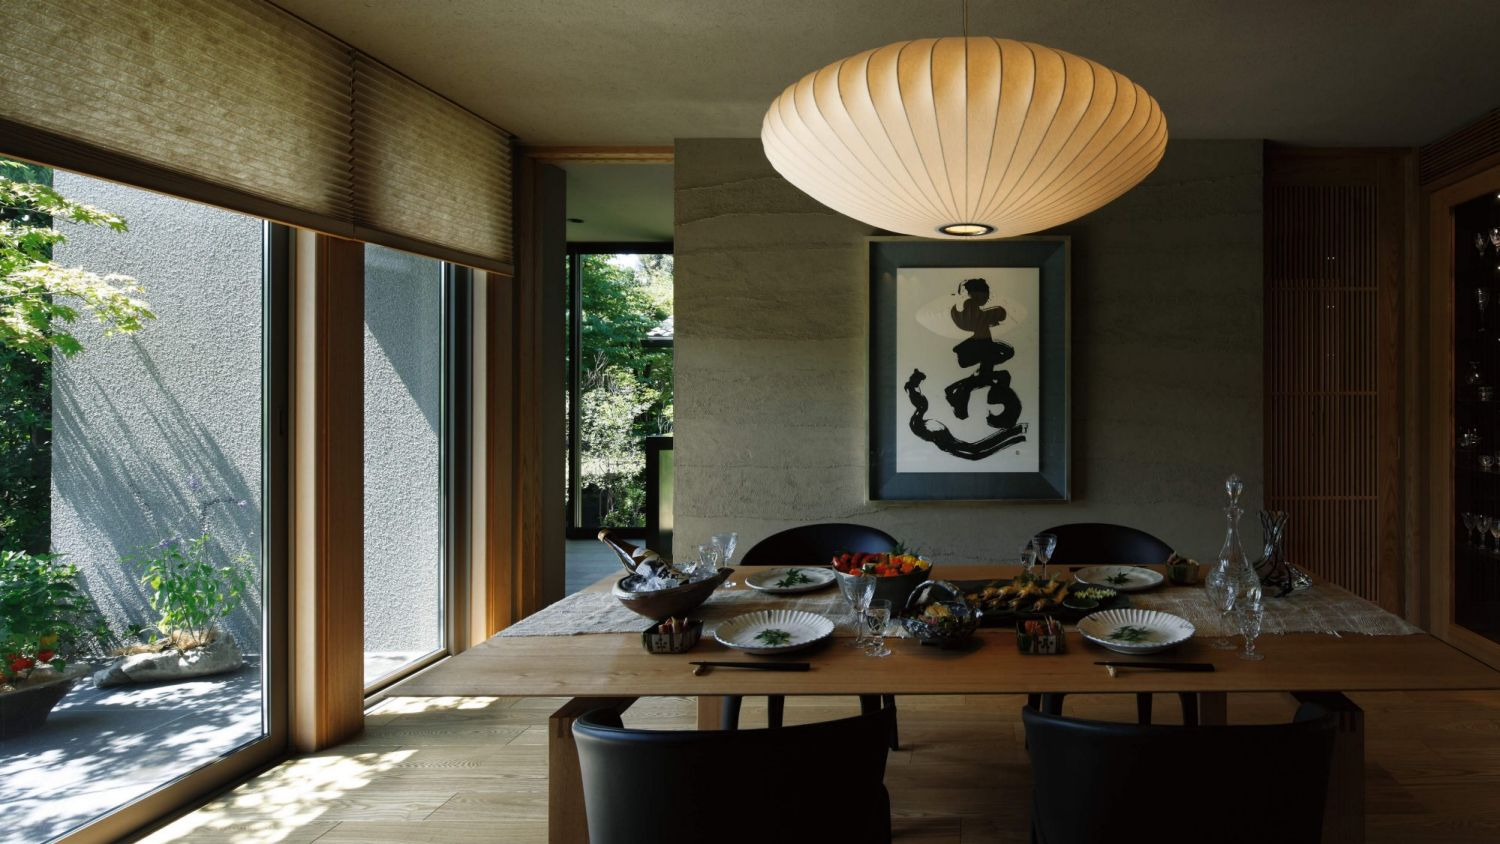 Japanese Style Interior Design Japanese Interior Design Trends To Incorporate Into Your Home